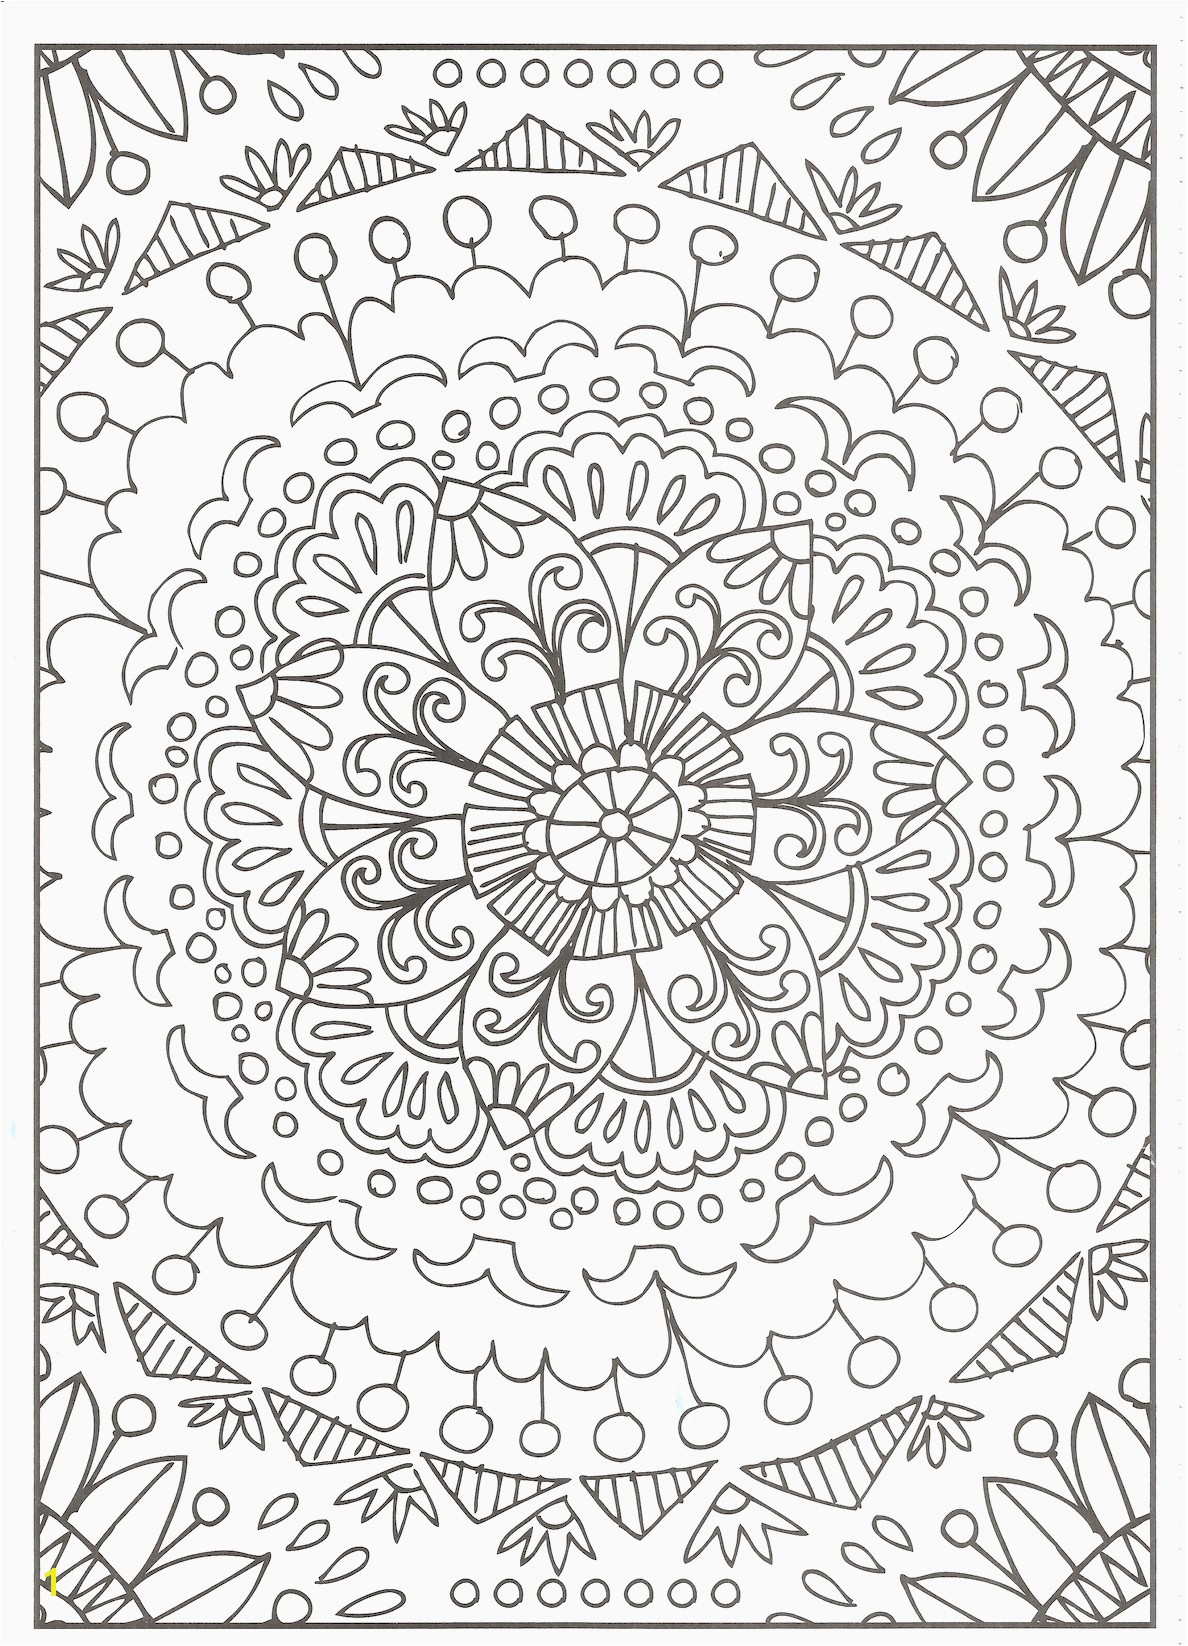 Free Printable Coloring Pages Adults Free Printable Flower Coloring Pages for Adults Inspirational Cool